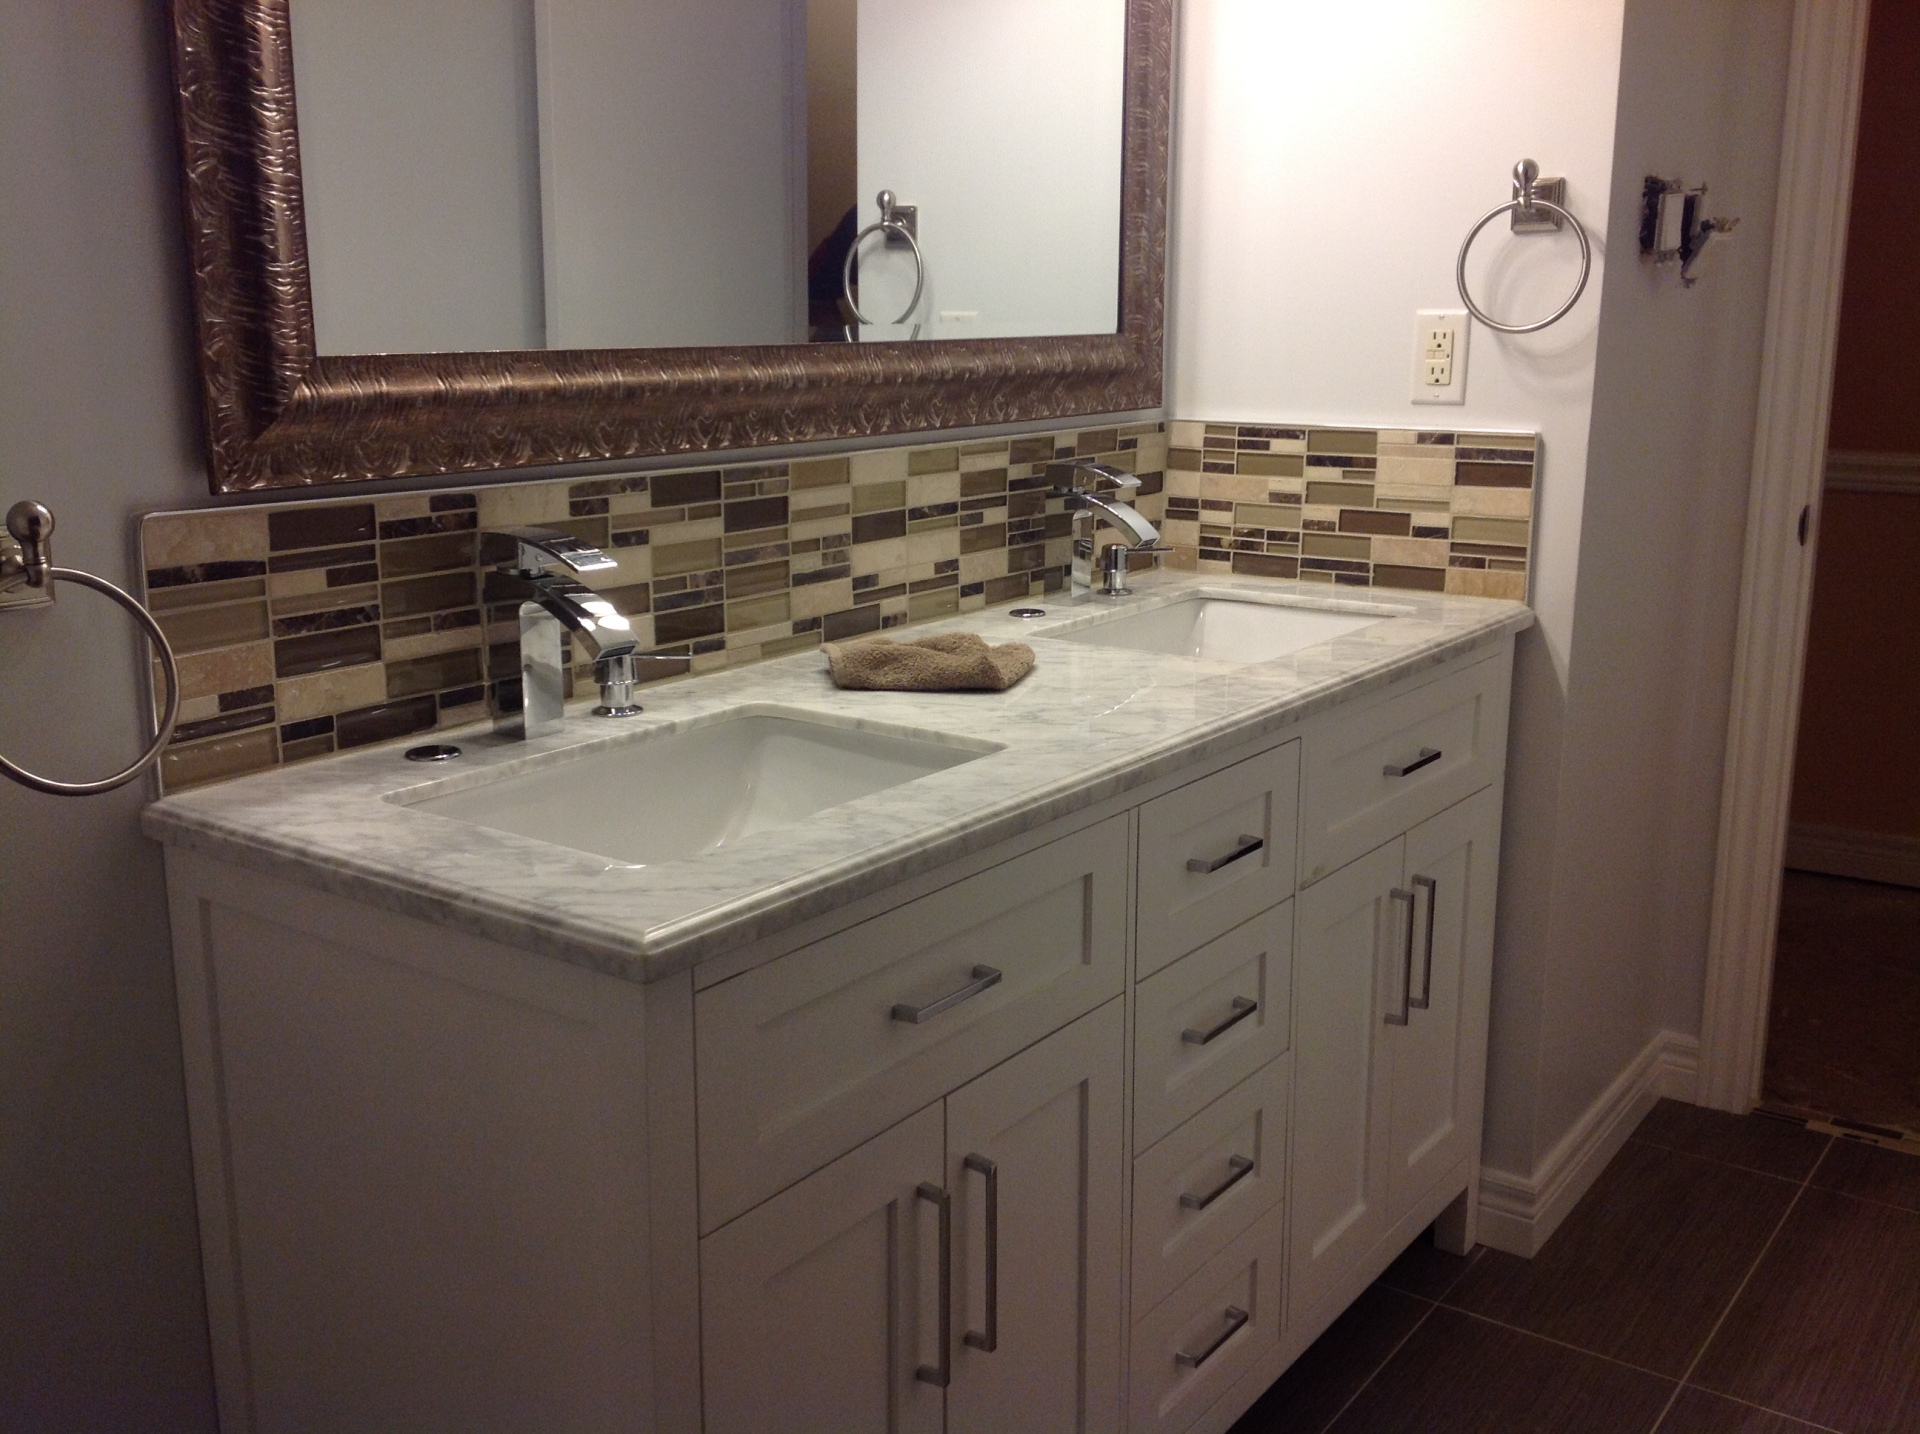 Bathroom vanity with back splash travertine, glass, marble